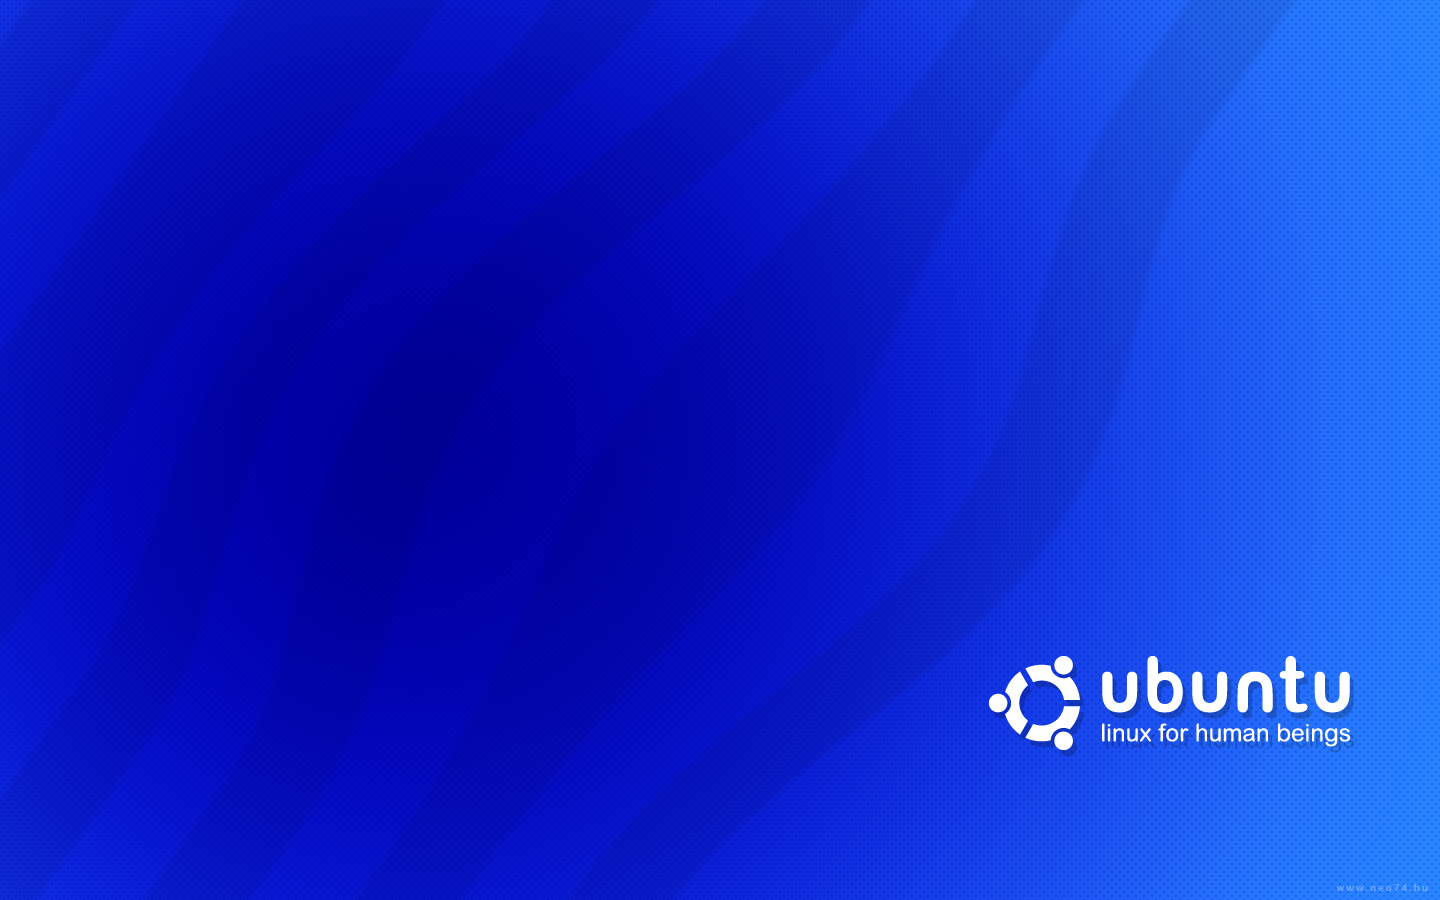 ubuntu blue by neo HD Wallpaper